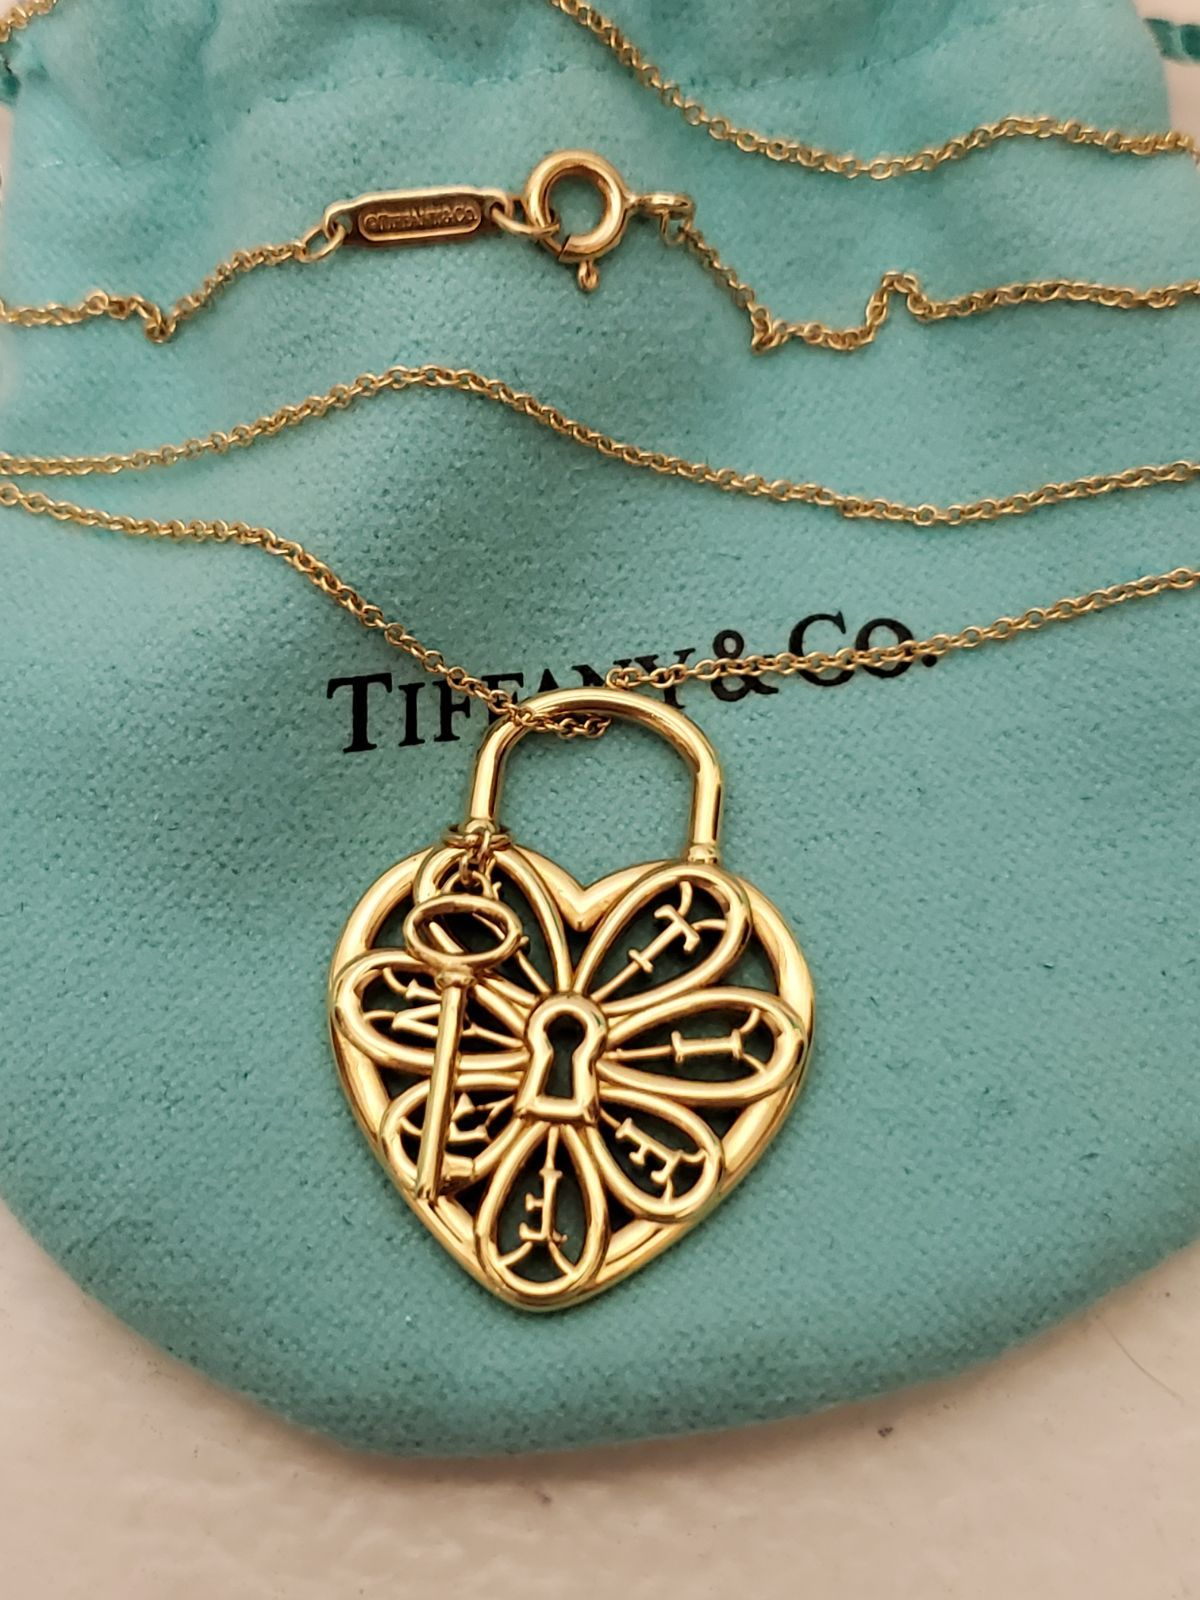 Tiffany Co 18k Filigree Heart Lock And Key Charm Necklace Retired Piece In Amazing Condition Hallmarks As Pictur Key Charm Necklace Necklace Tiffany Co